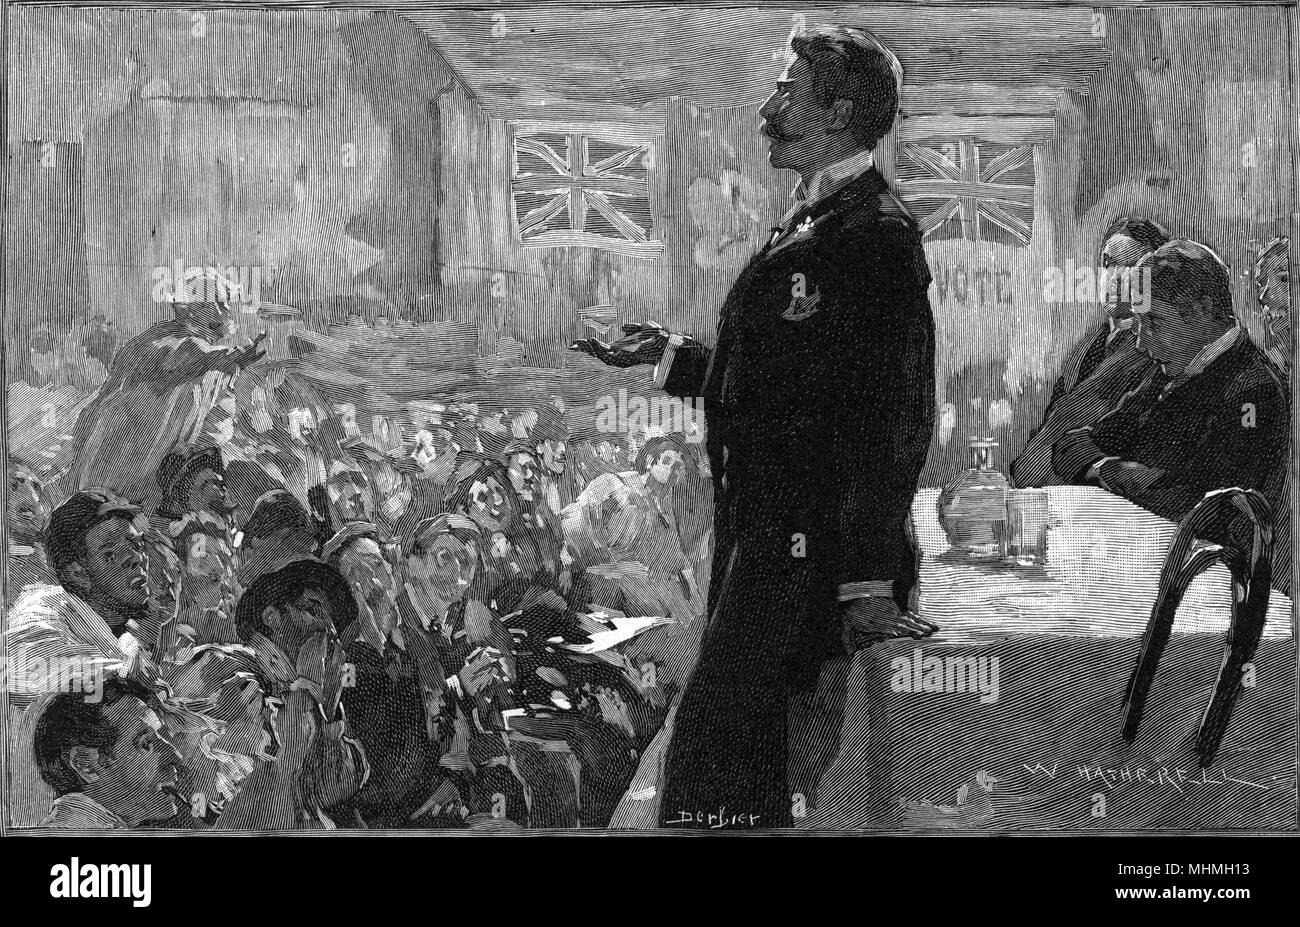 A political meeting in progress in Ireland during elections, union flags displayed prominently on the wall - the candidate tries to speak in a hostile atmosphere     Date: 1893 - Stock Image